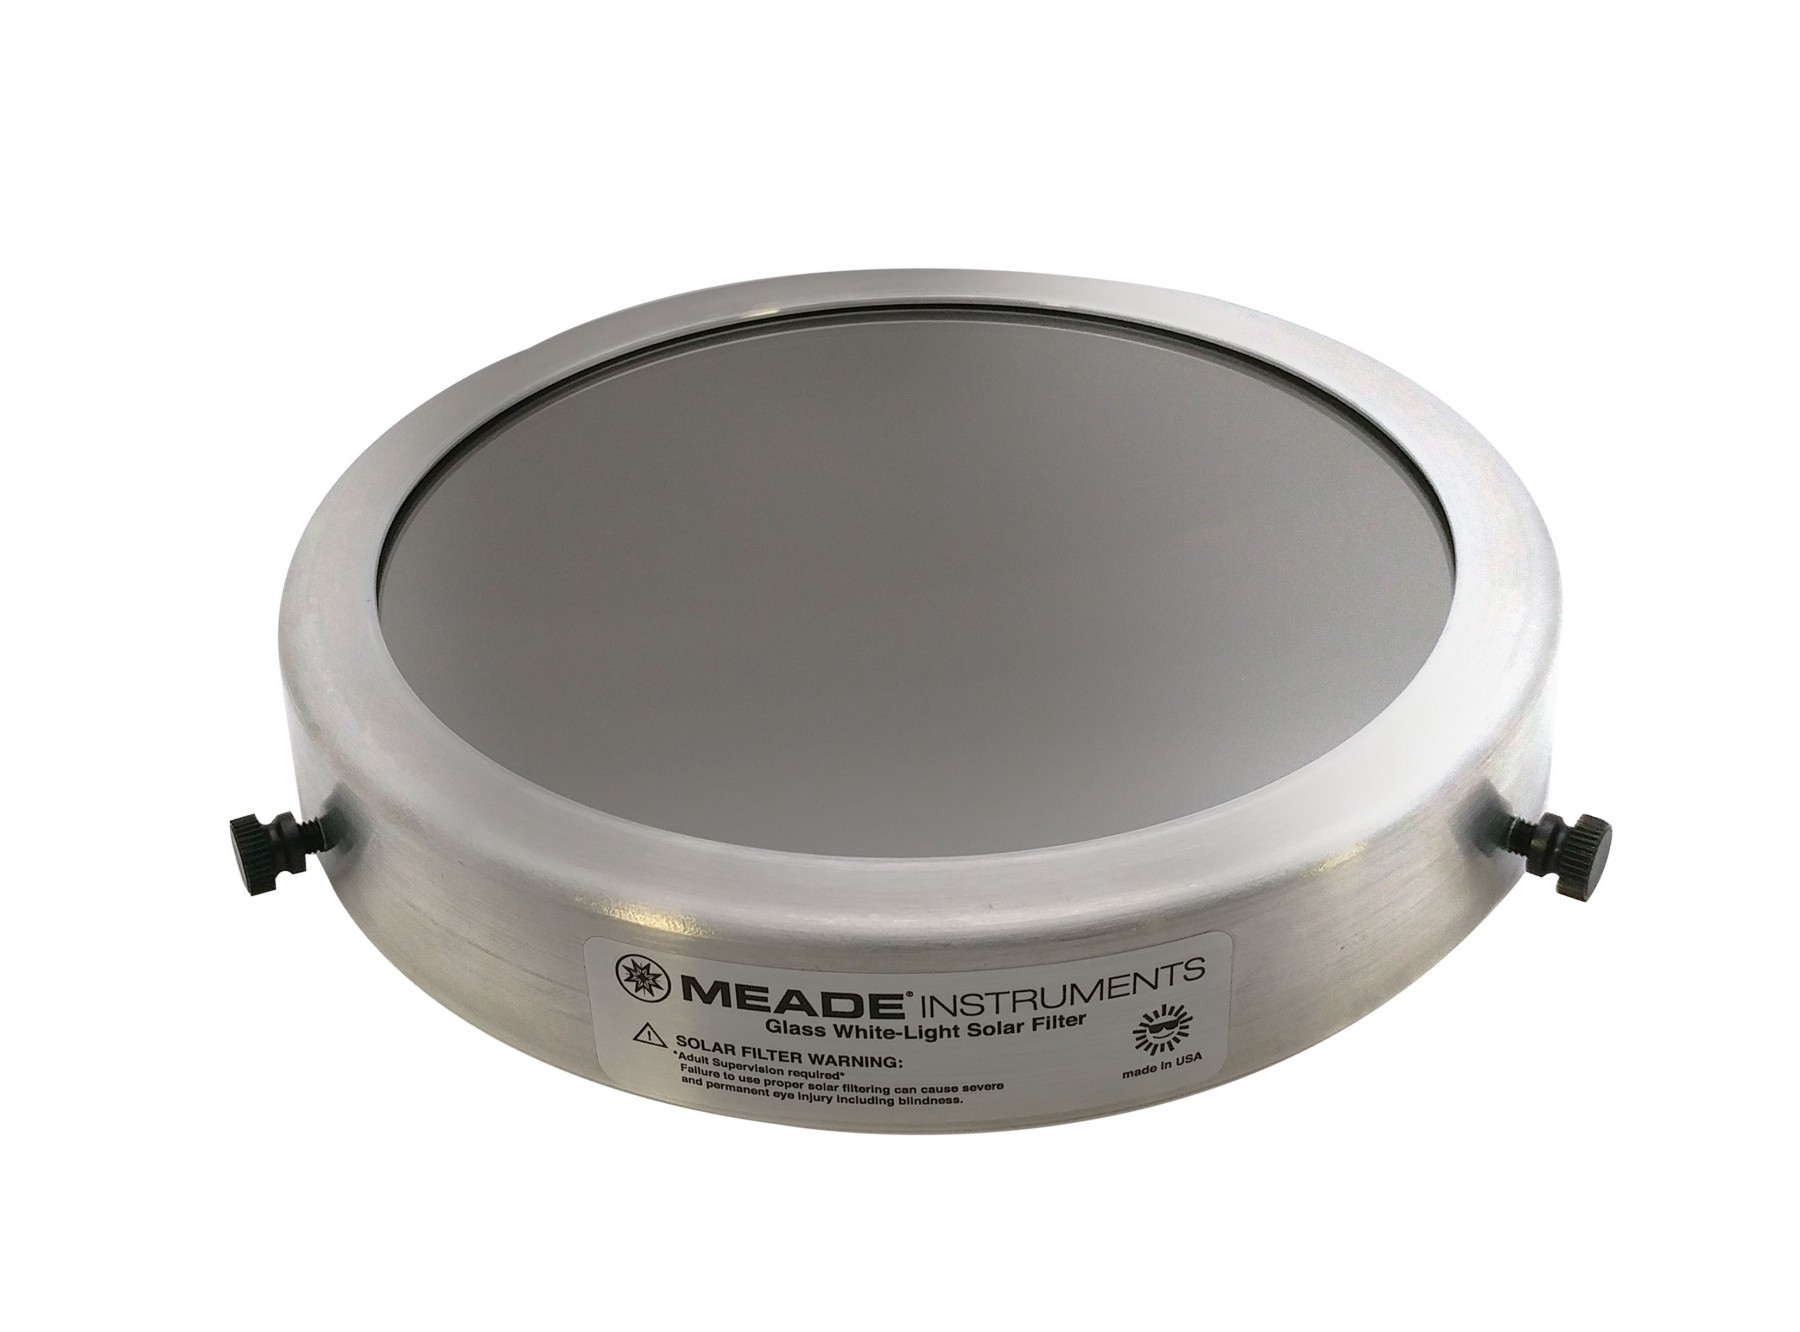 Meade Glass White-light Solar Filter #712